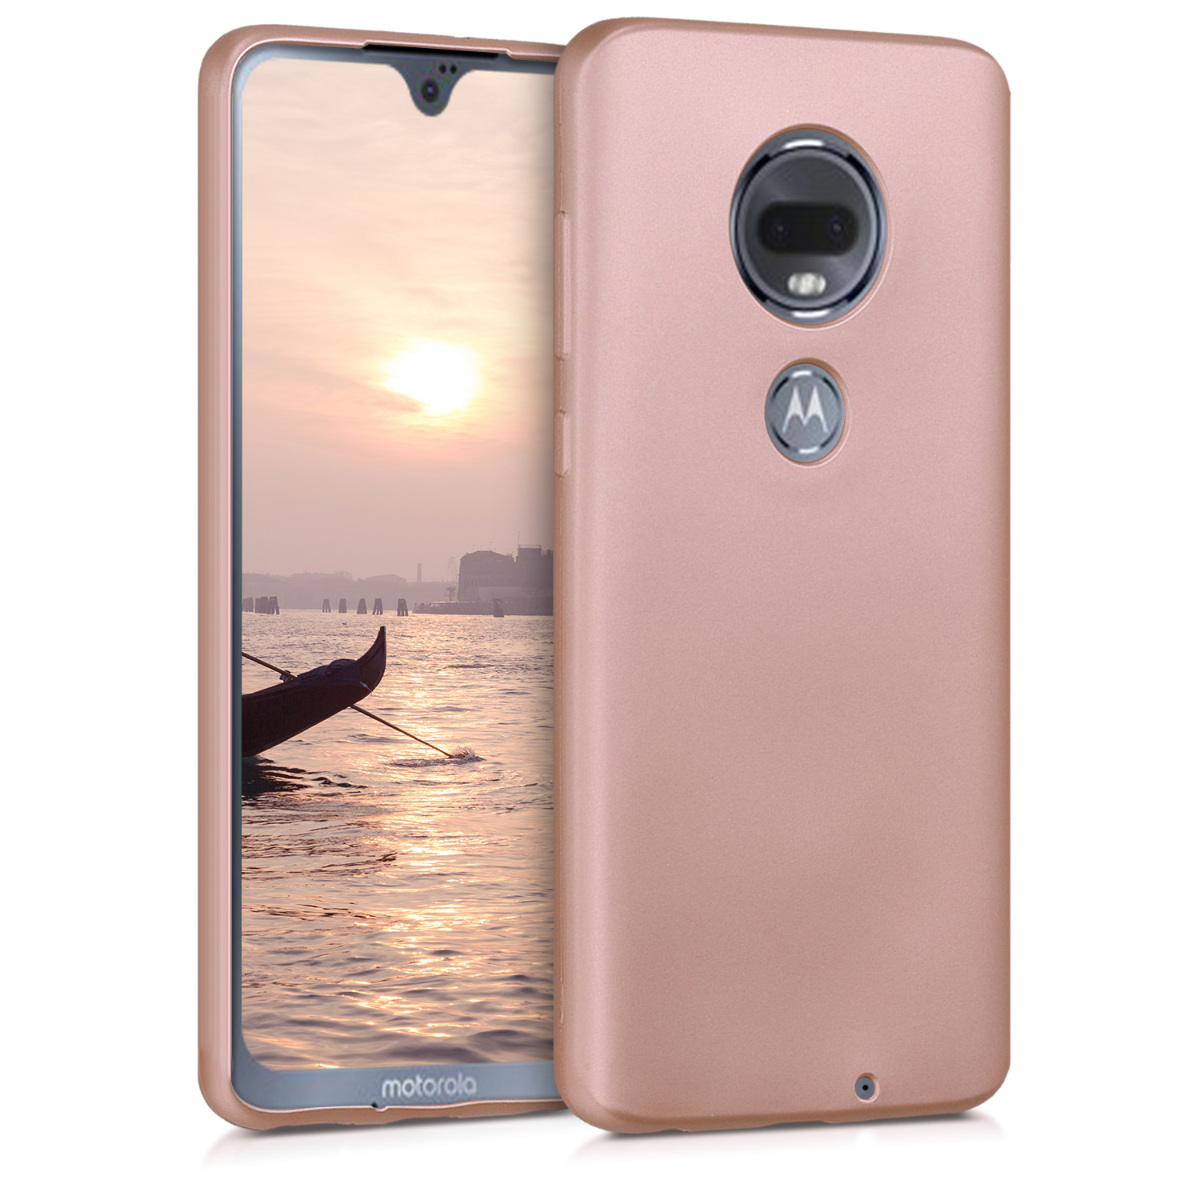 KW Θήκη Σιλικόνης Motorola Moto G7 - Metallic Rose Gold (47485.31)